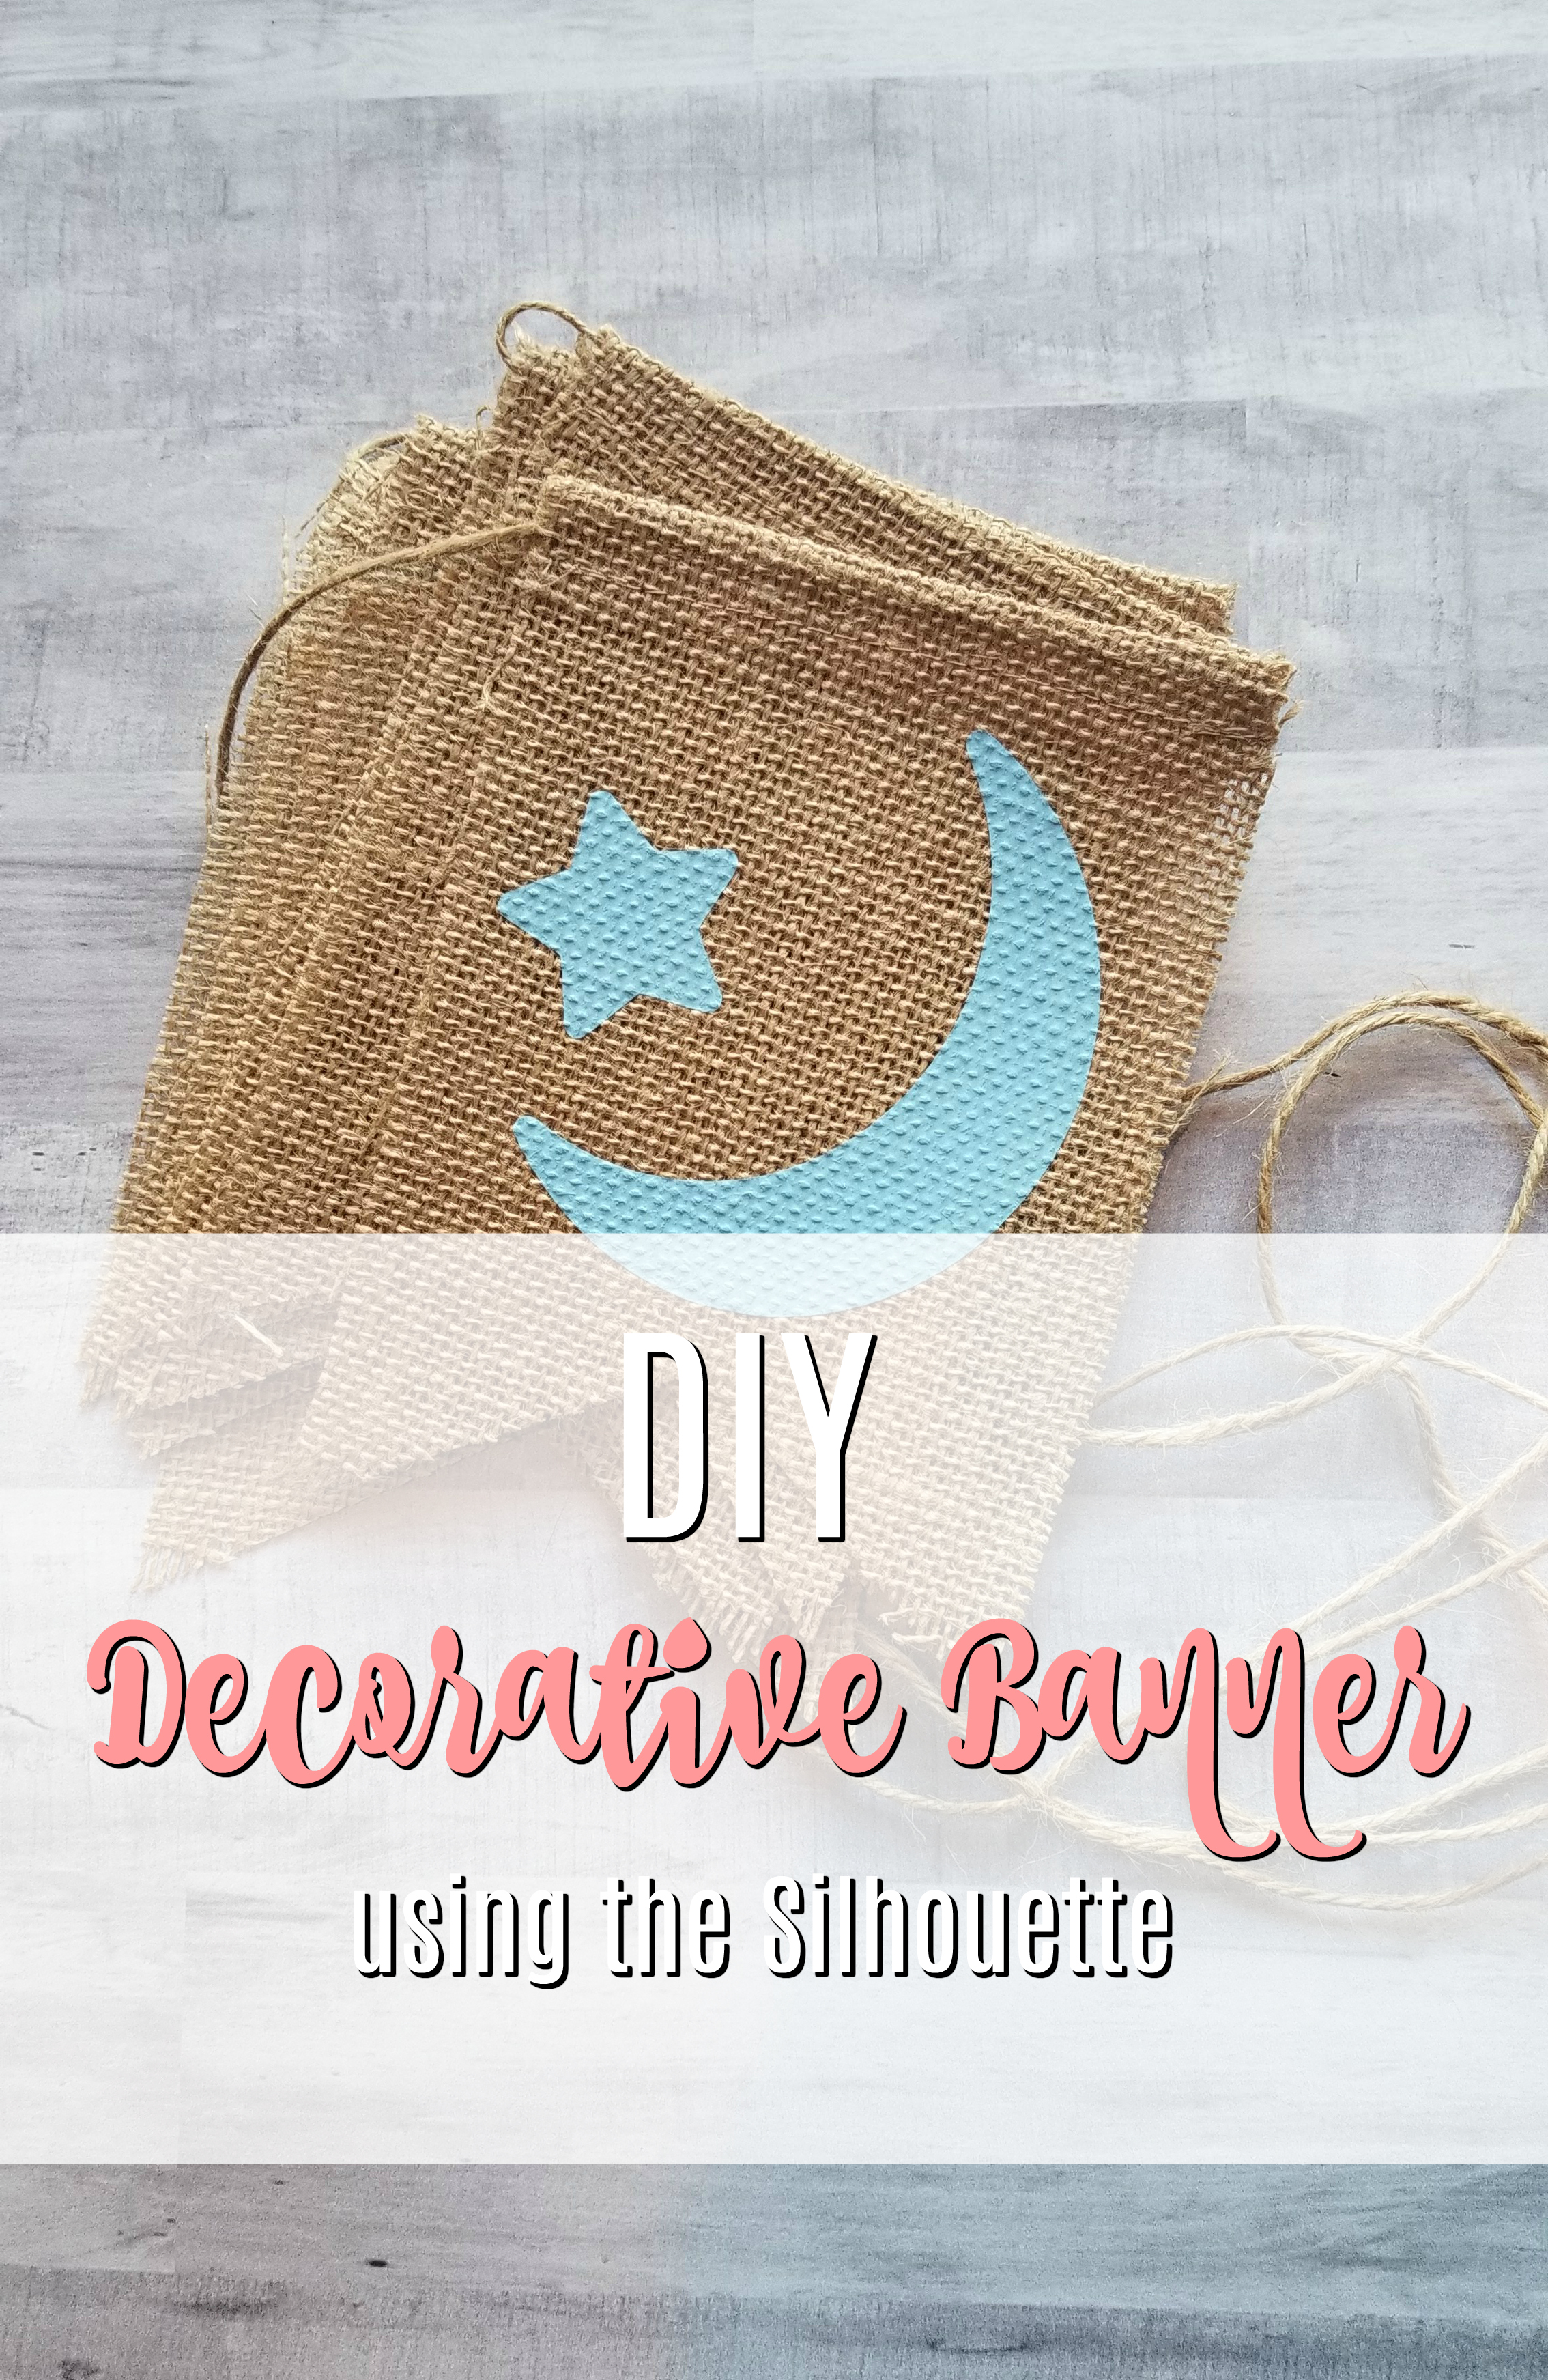 diy decorative BANNer.jpg